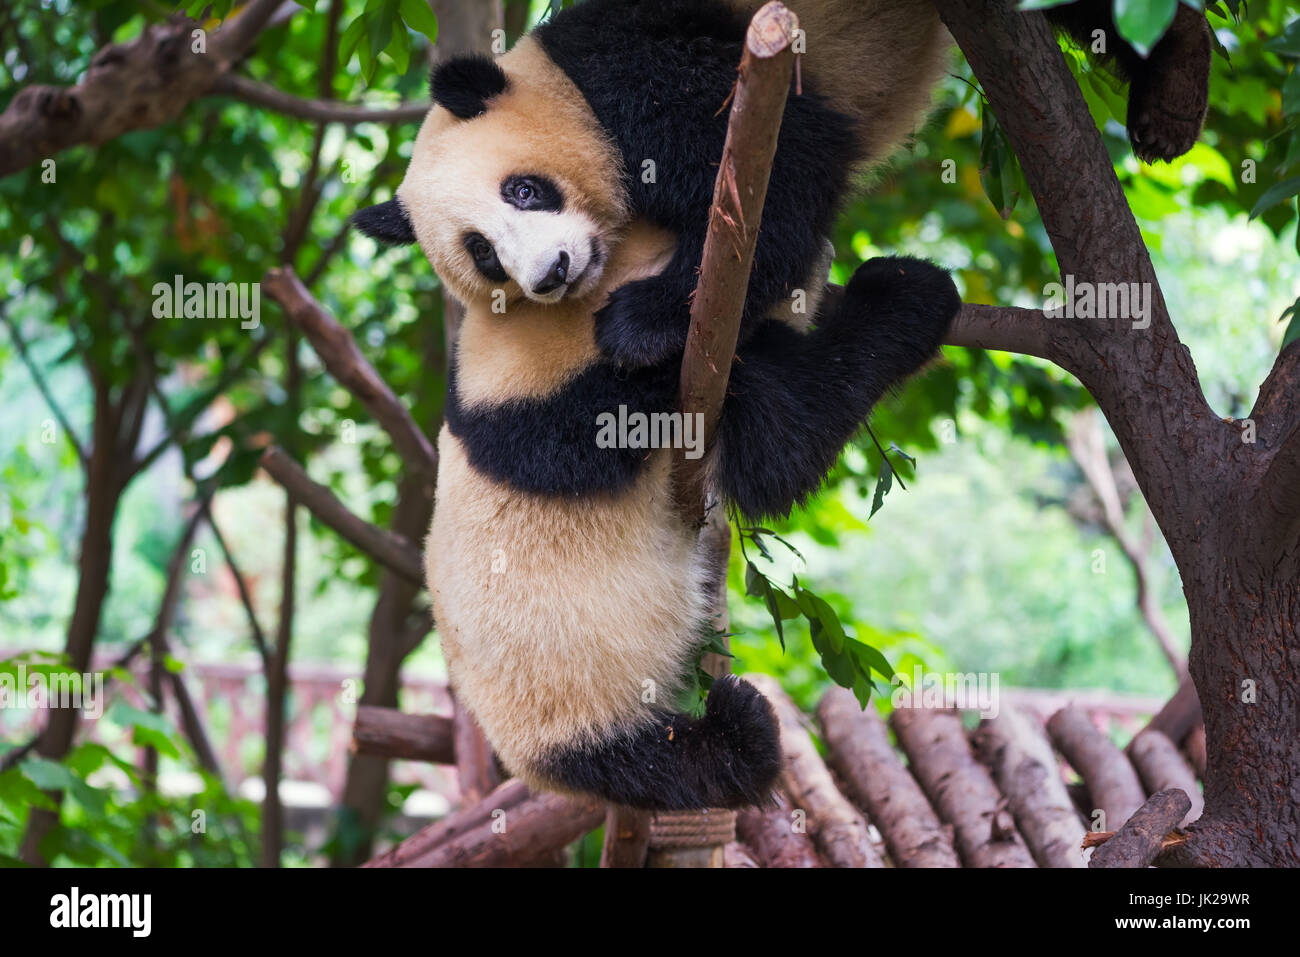 Two giant panda cubs playing together in a tree, Chengdu, Sichuan Province, China Stock Photo